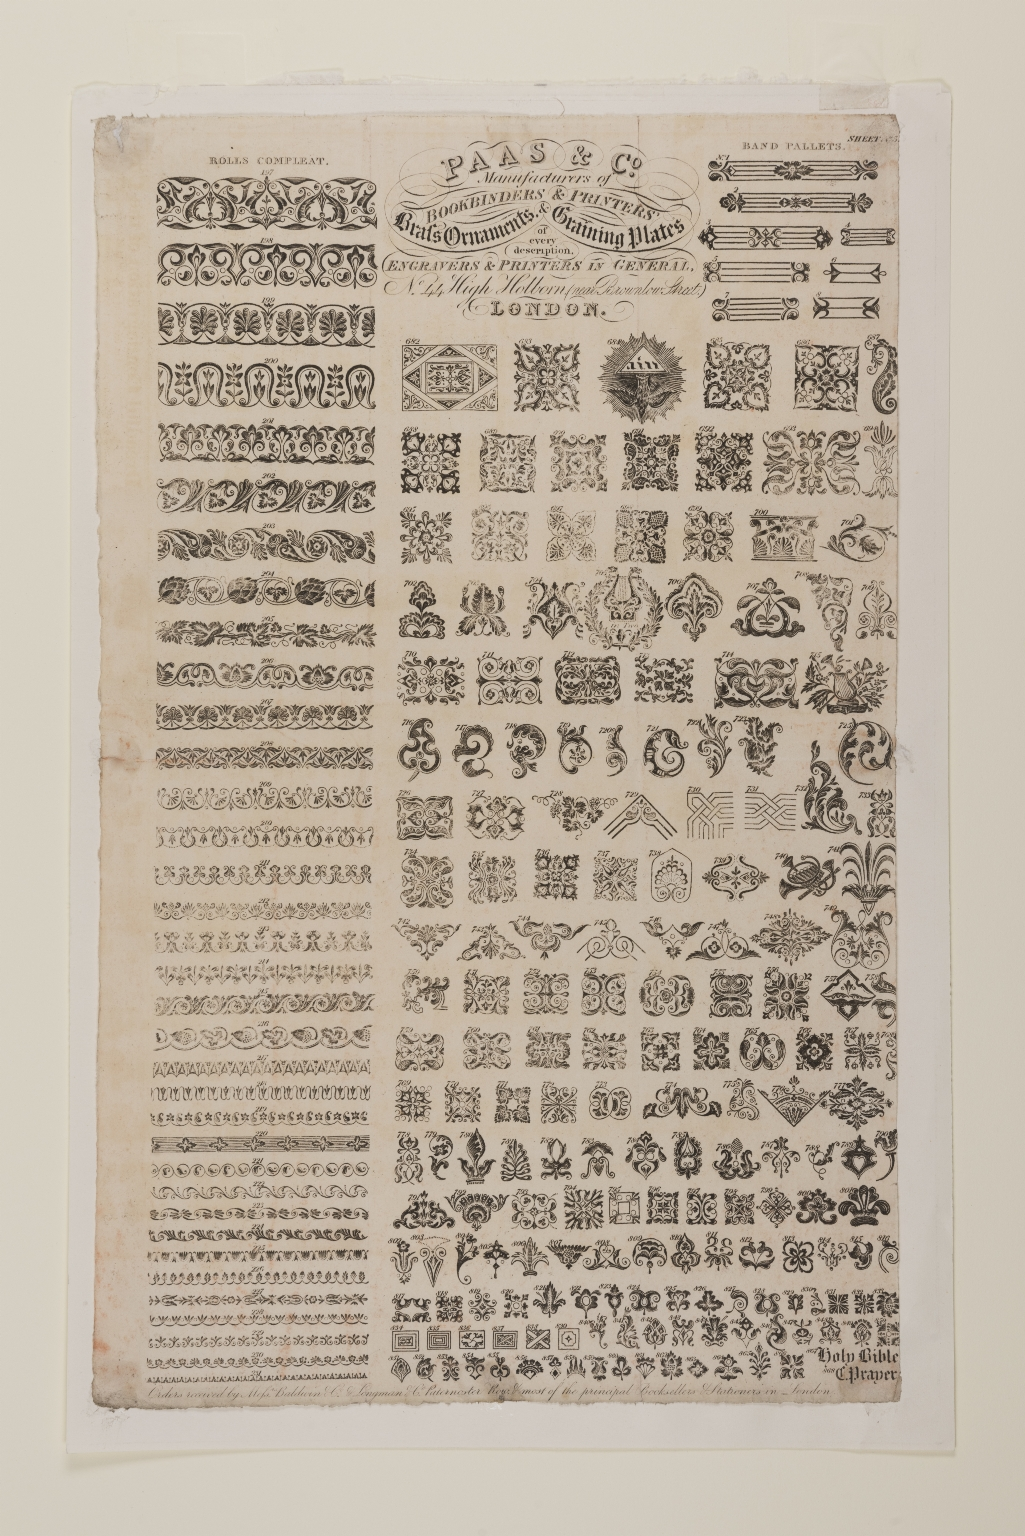 Paas & Co.: manufacturers of bookbinders' & printers' brass ornaments & graining plates of every description: engravers and printers in general